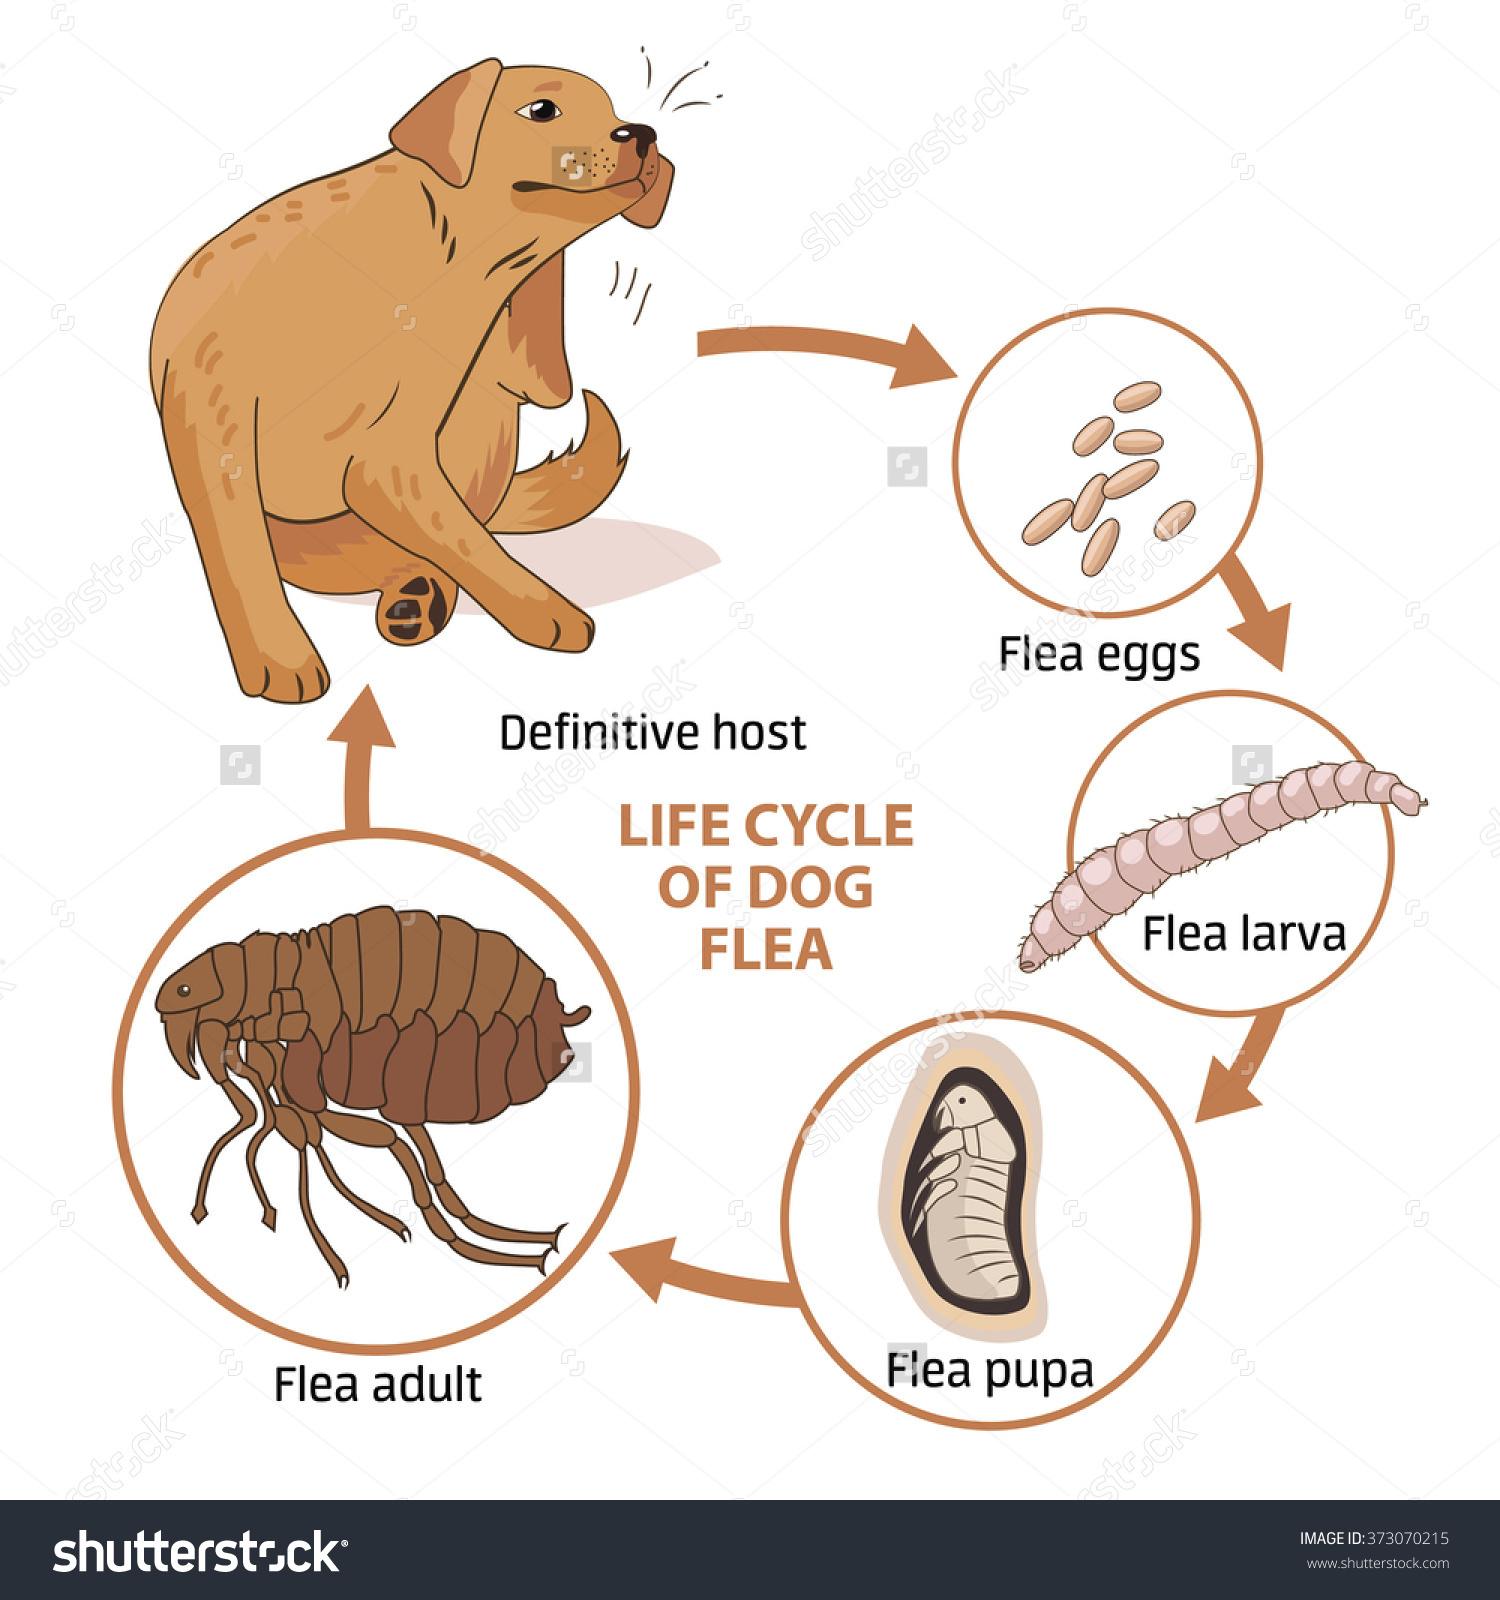 Dog life cycle clipart svg free stock Life Cycle Dog Flea Vector Illustration Stock Vector 373070215 ... svg free stock